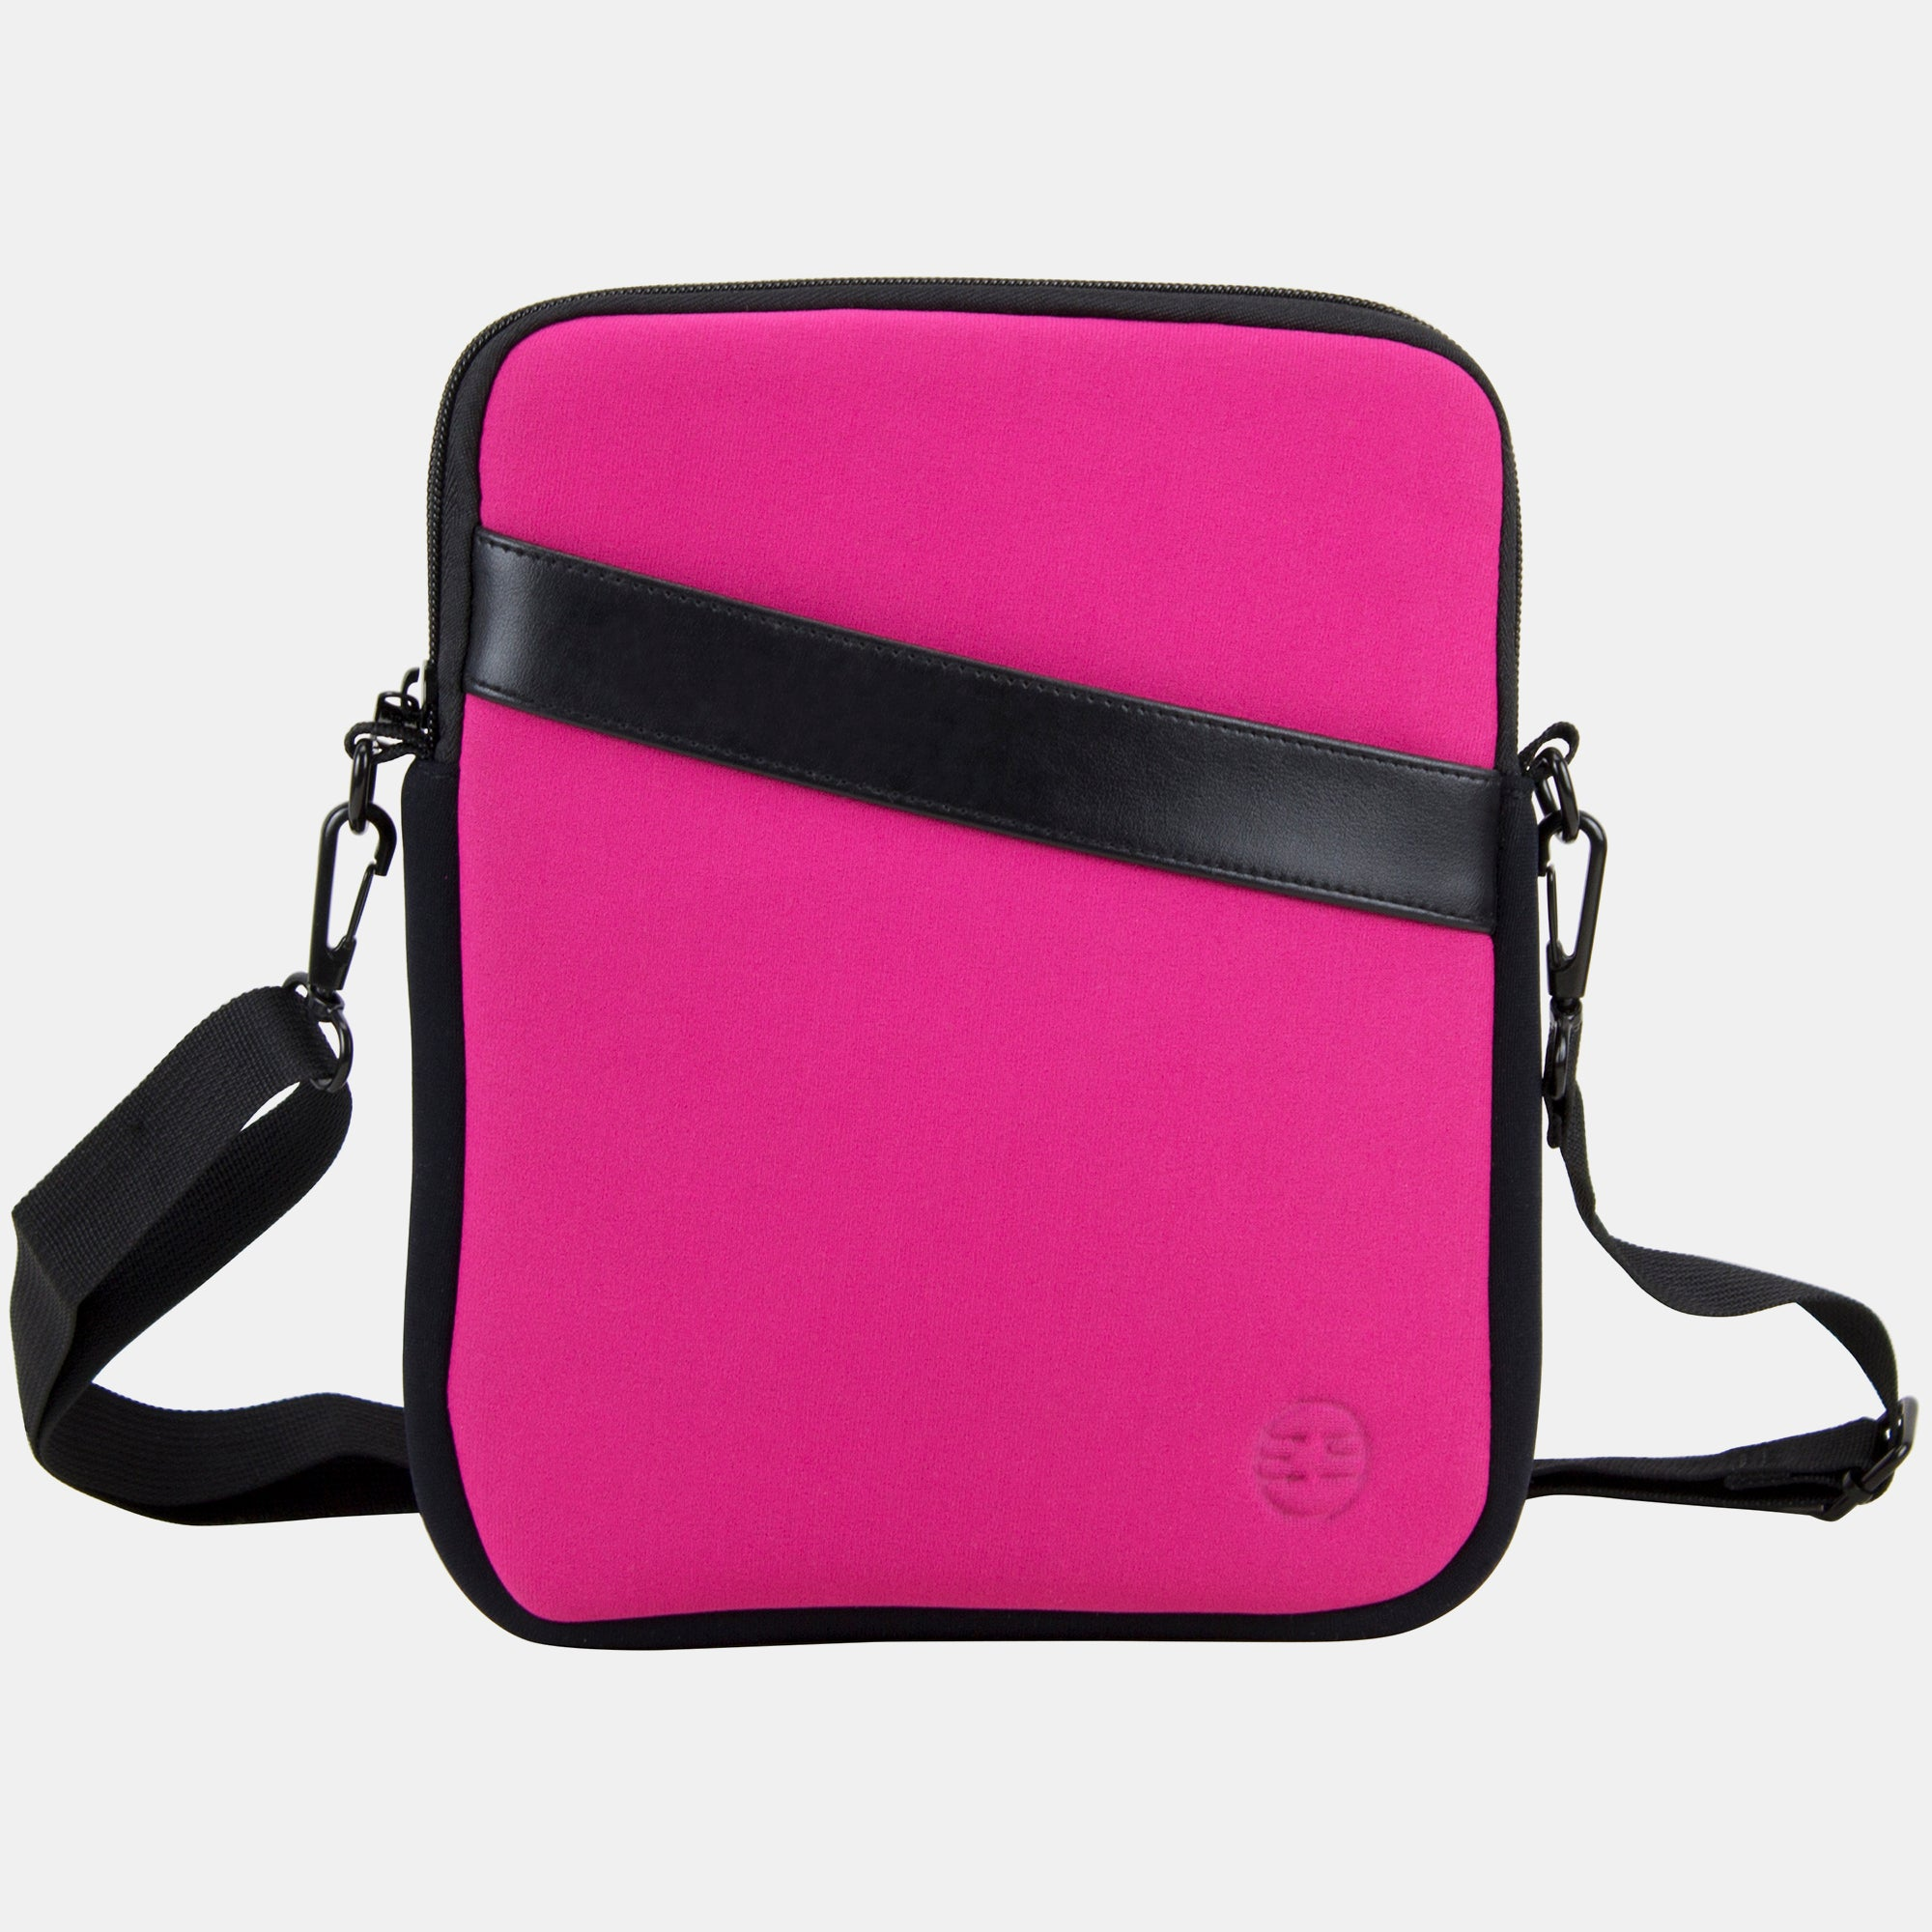 Eastsport Neoprene Tablet Carrying Case with Detachable Crossbody Strap